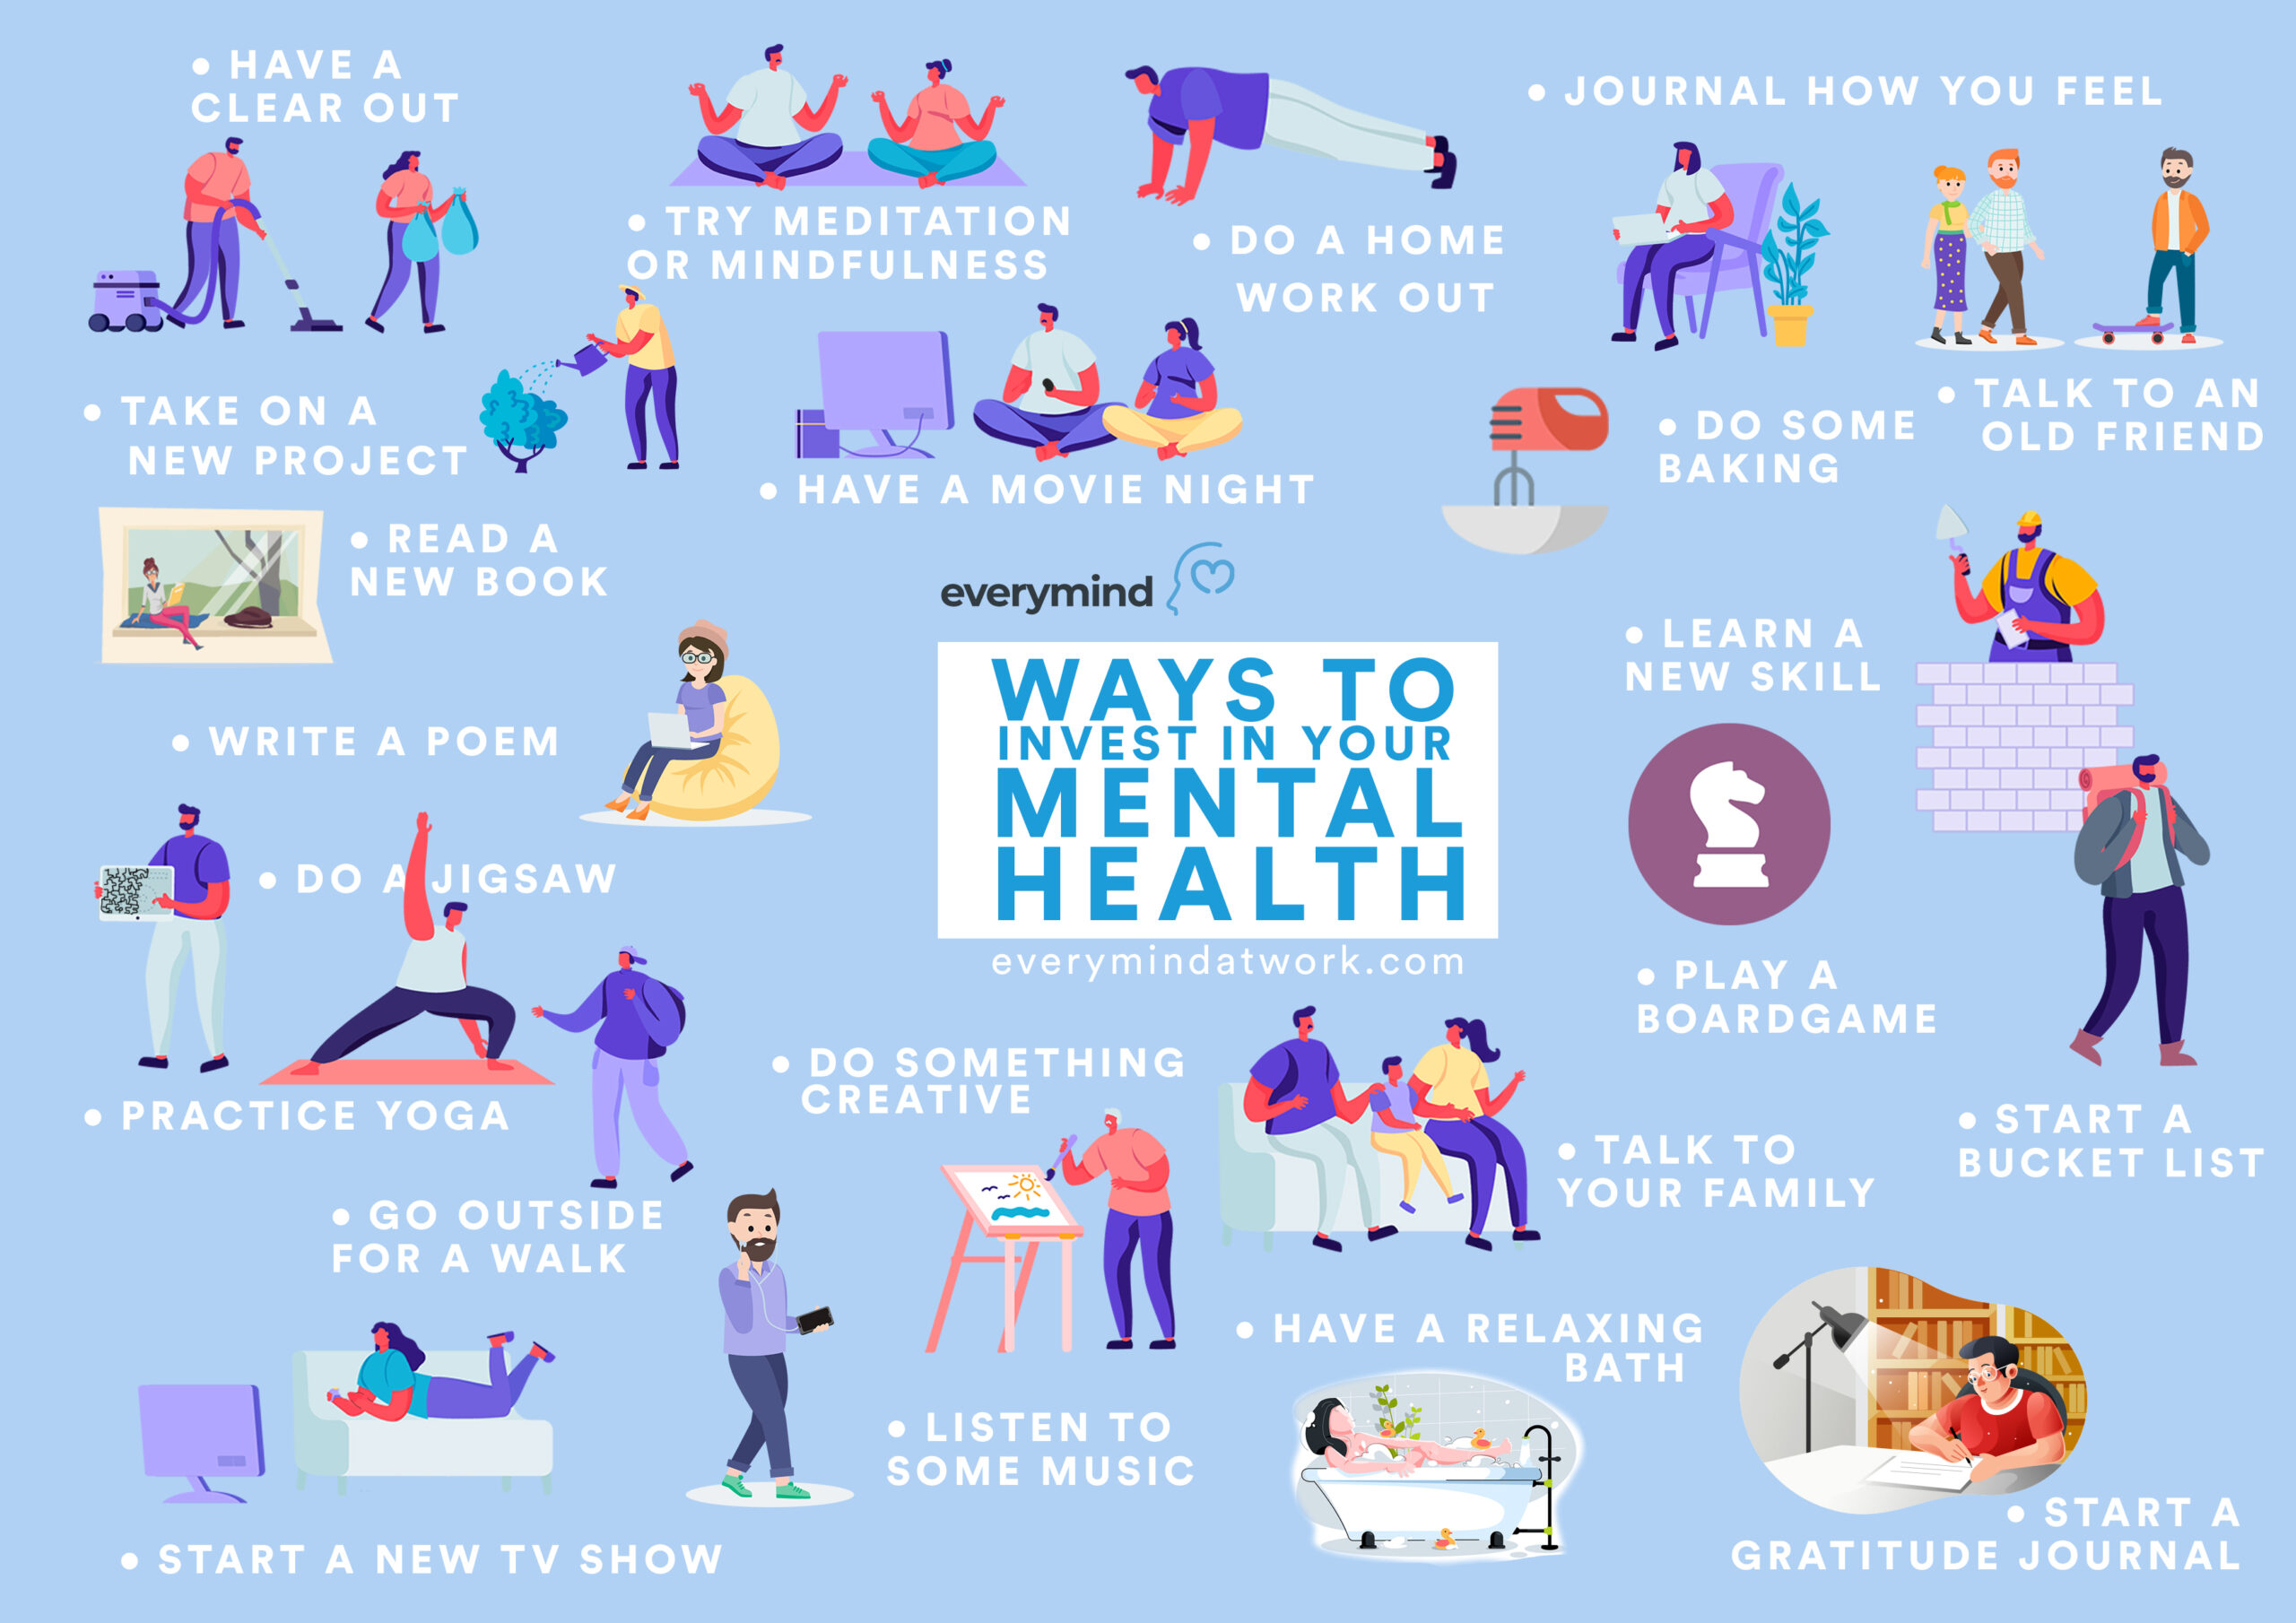 Way to invest in your mental health